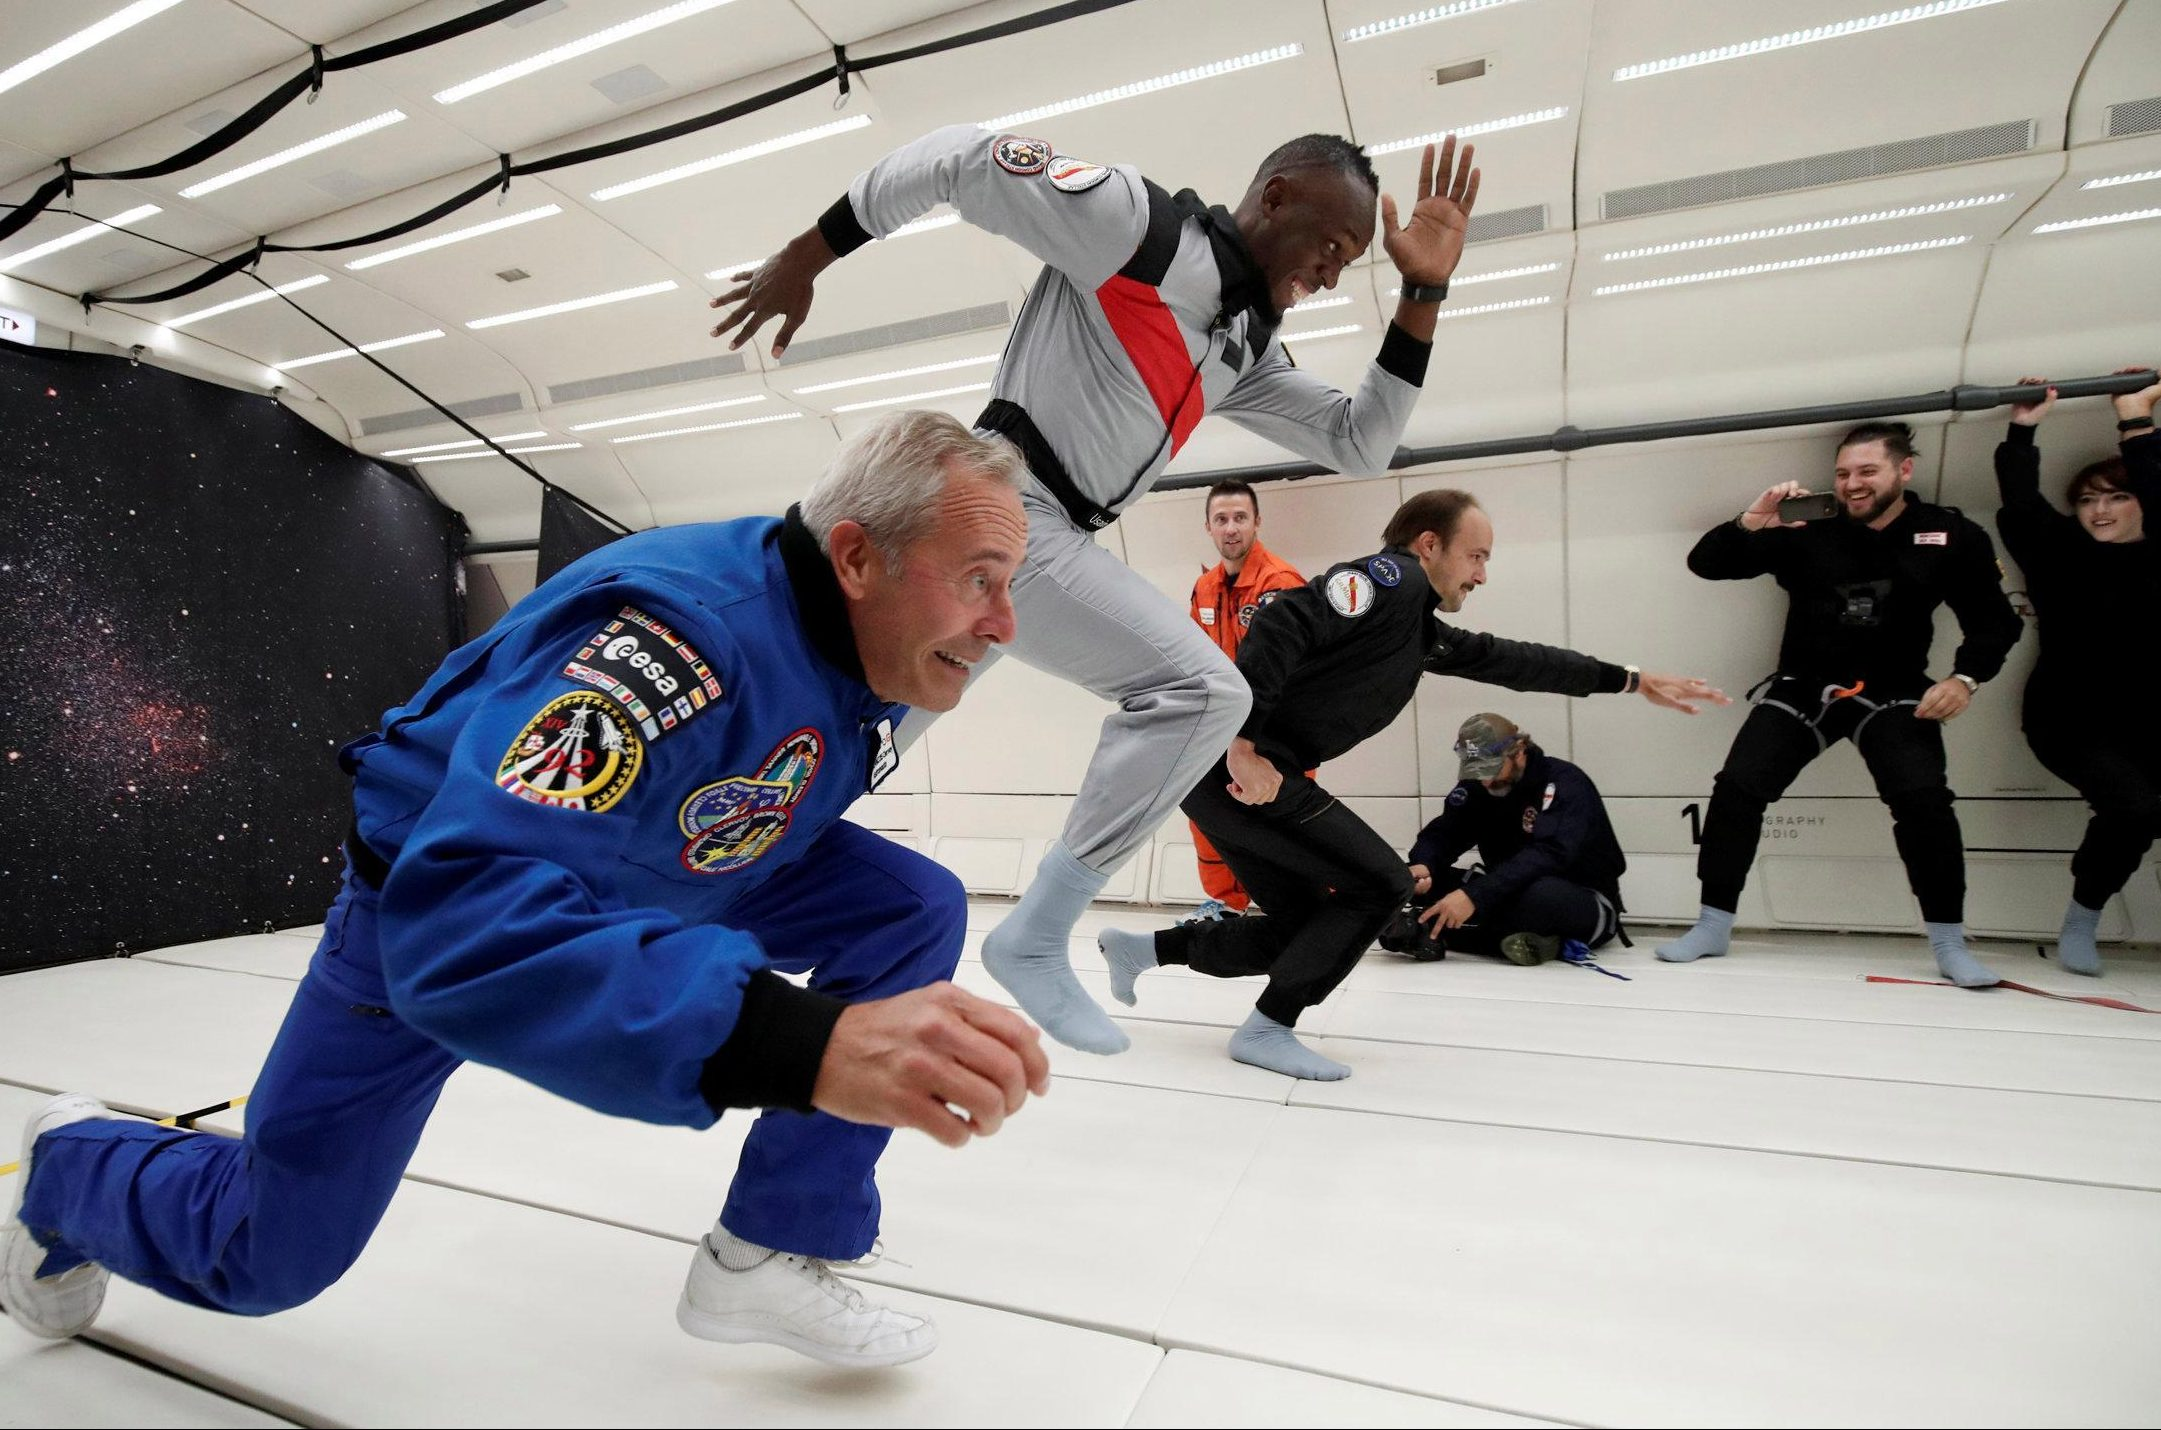 Usain Bolt shows he can match his astronomical achievements on the ground by winning a space race in zero gravity